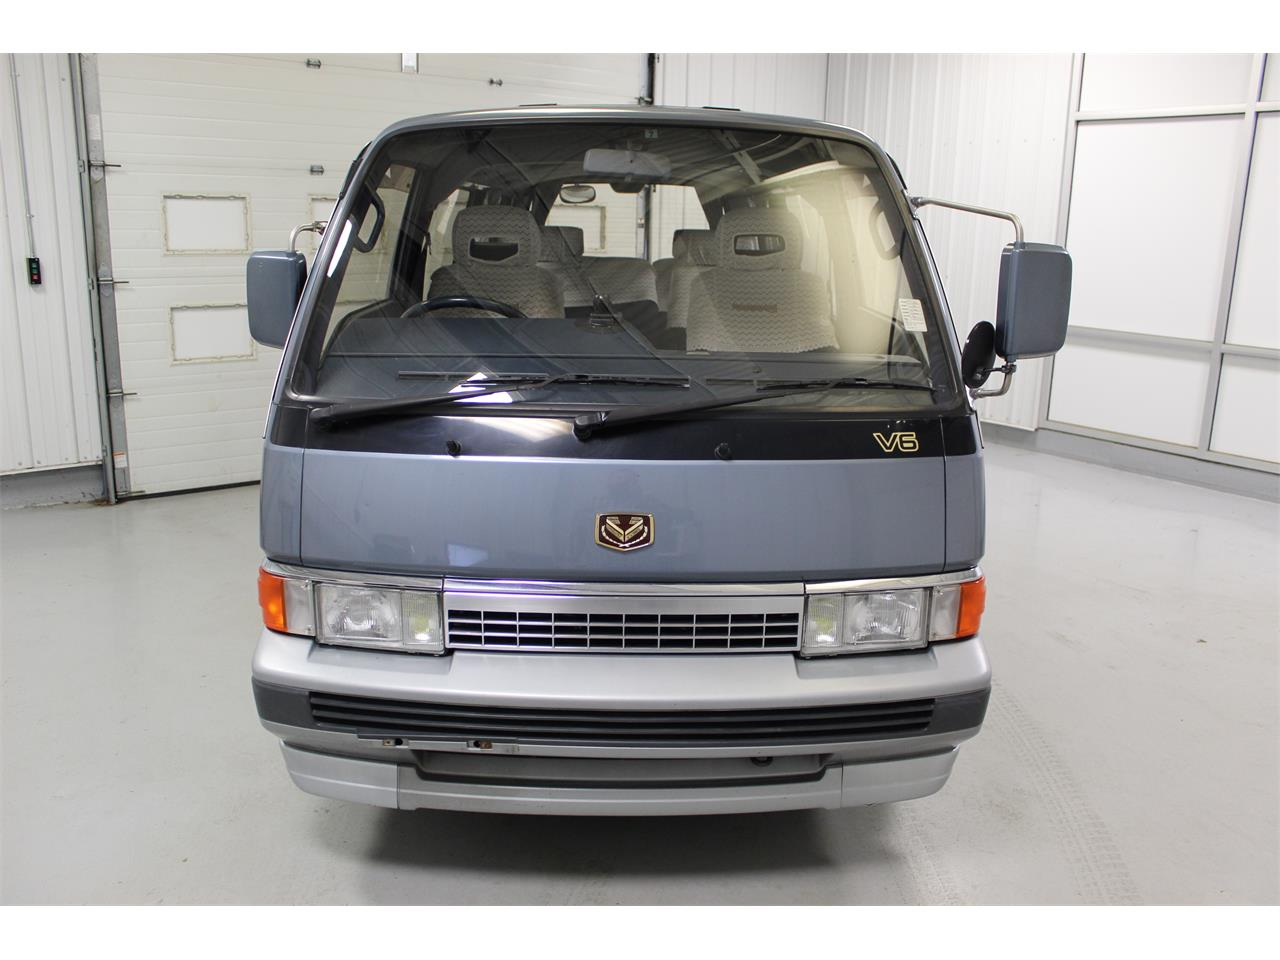 Large Picture of 1990 Caravan Offered by Duncan Imports & Classic Cars - PH22